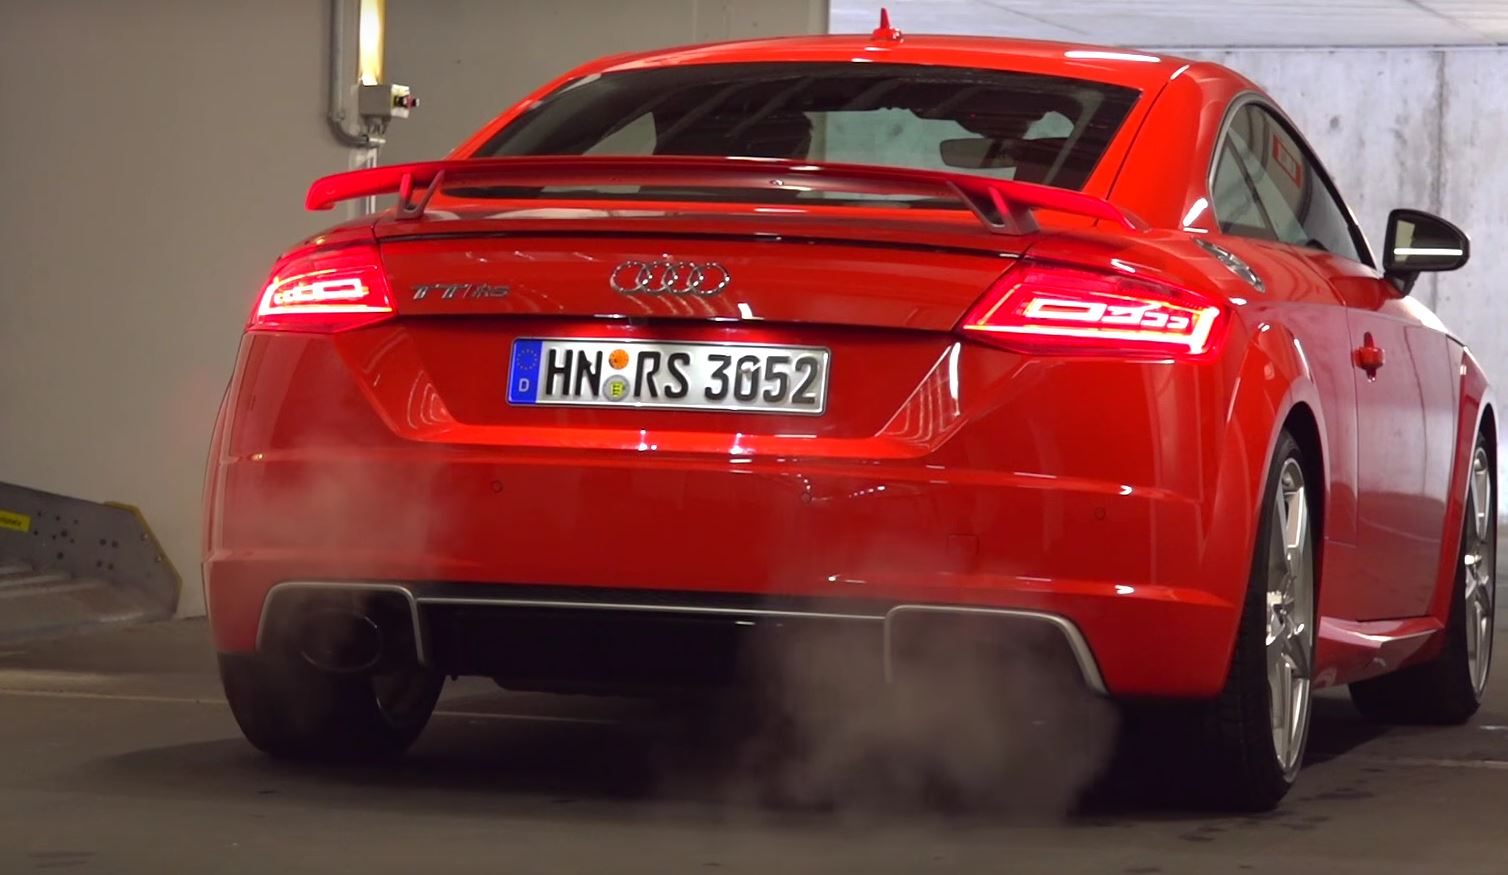 We ve got three in depth reviews from youtuber automann tv covering everything from the cold start of that brutal 2 5 liter turbo to acceleration tests and